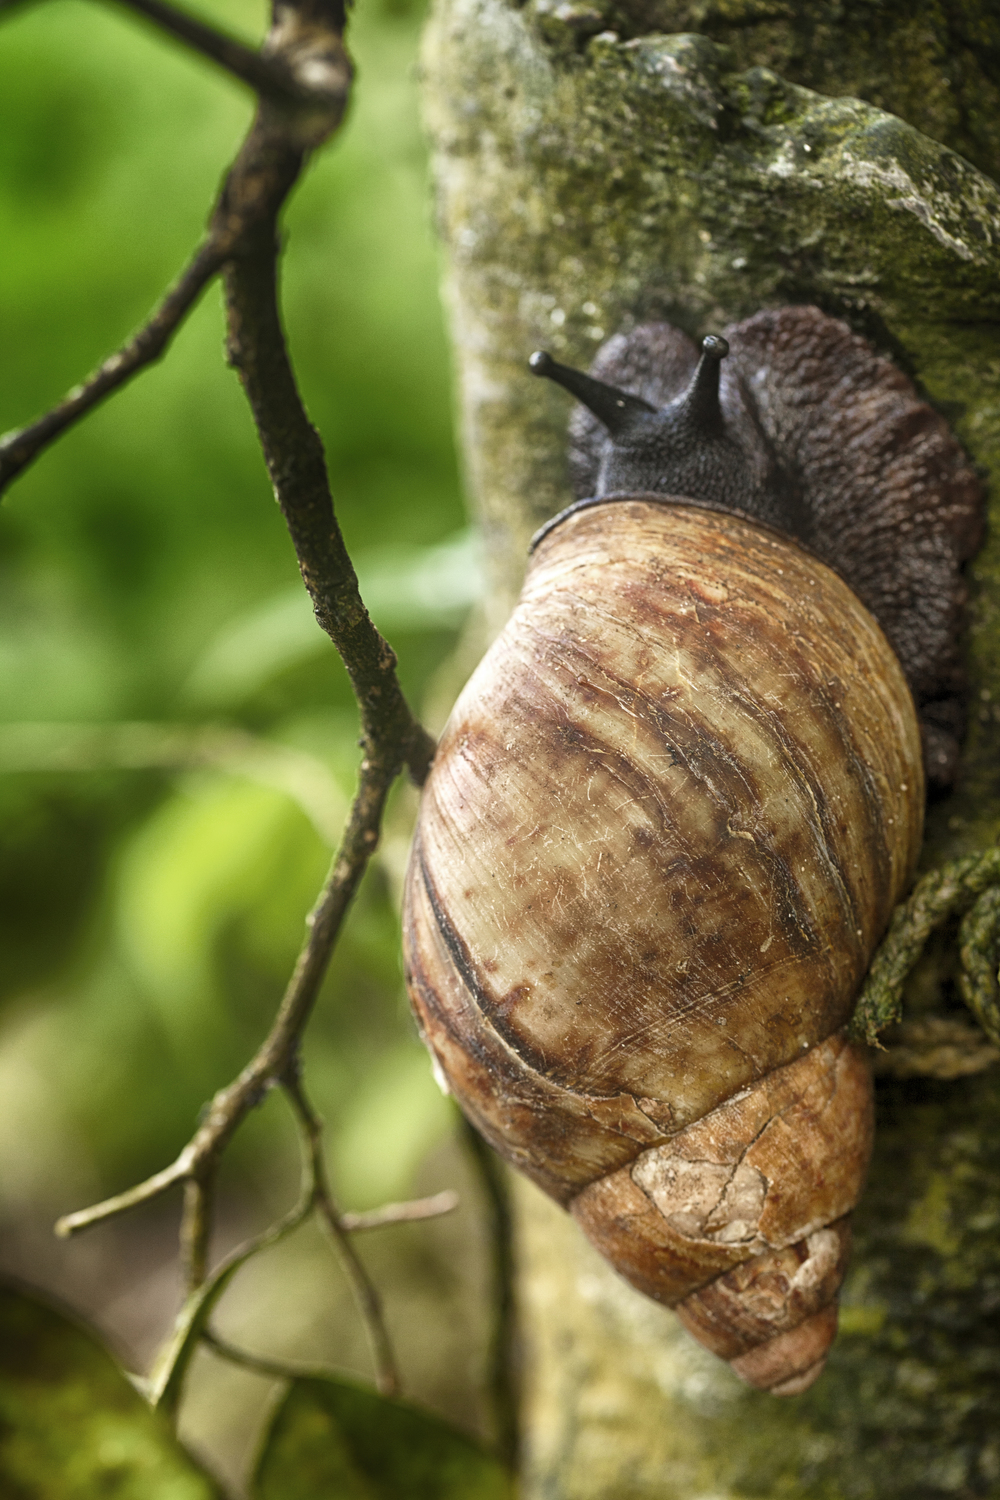 Giant African Land Snail Read about Achatina fulica Comments